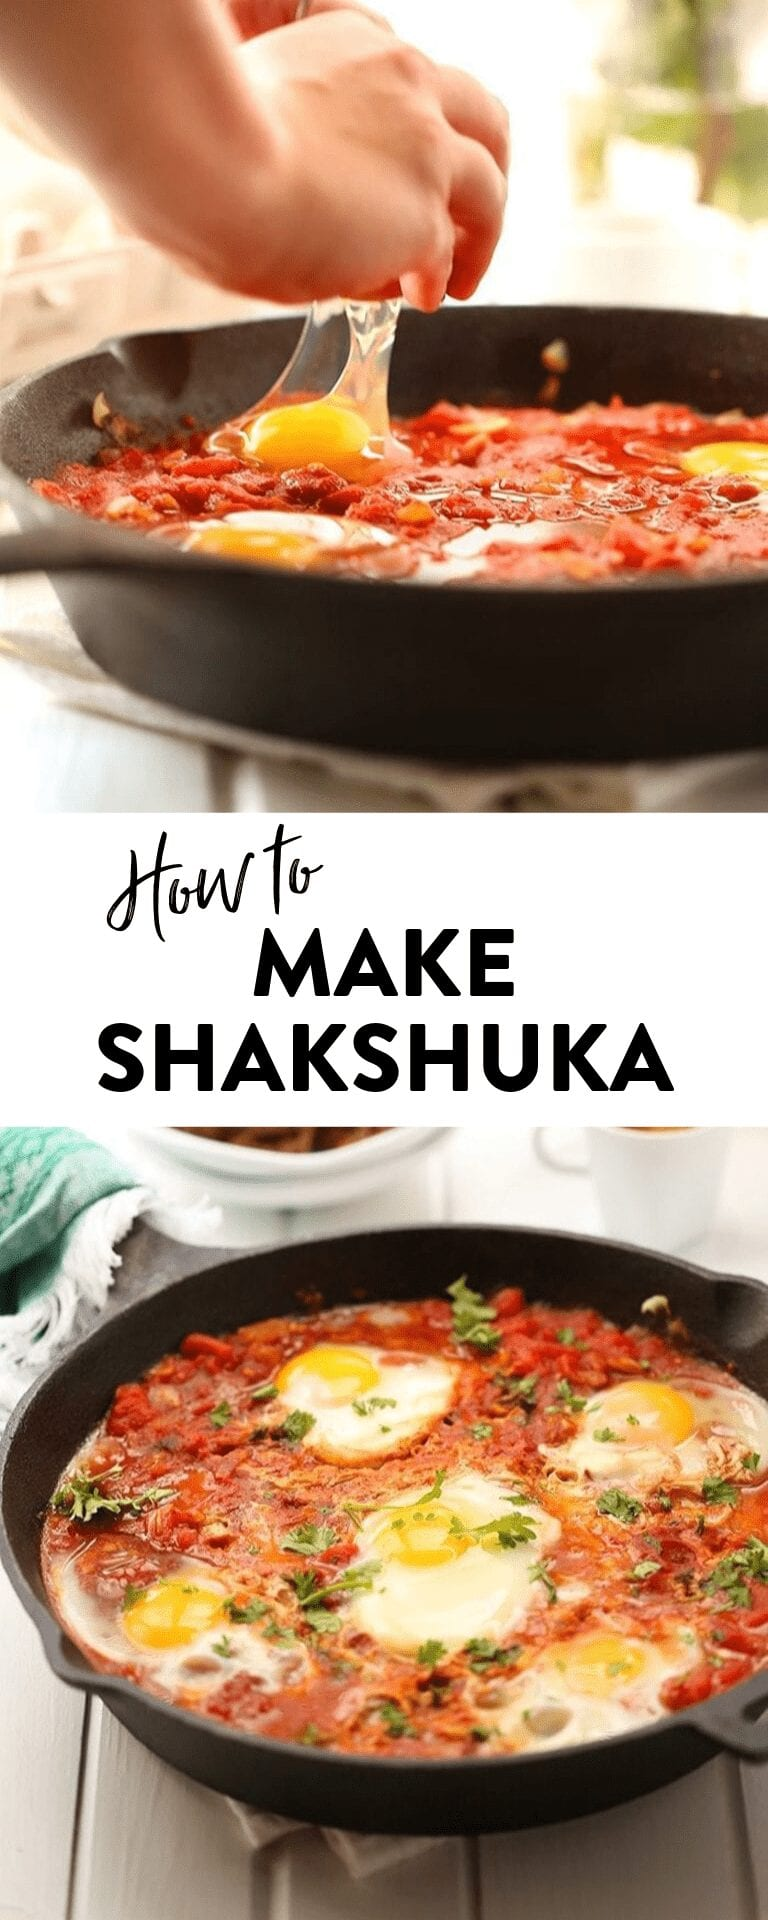 Have you ever made shakshuka? This easy shakshuka recipe has a spicy tomato base topped with poached eggs and fresh herbs. You can even customize this easy shakshuka recipe to your liking! #shakshuka